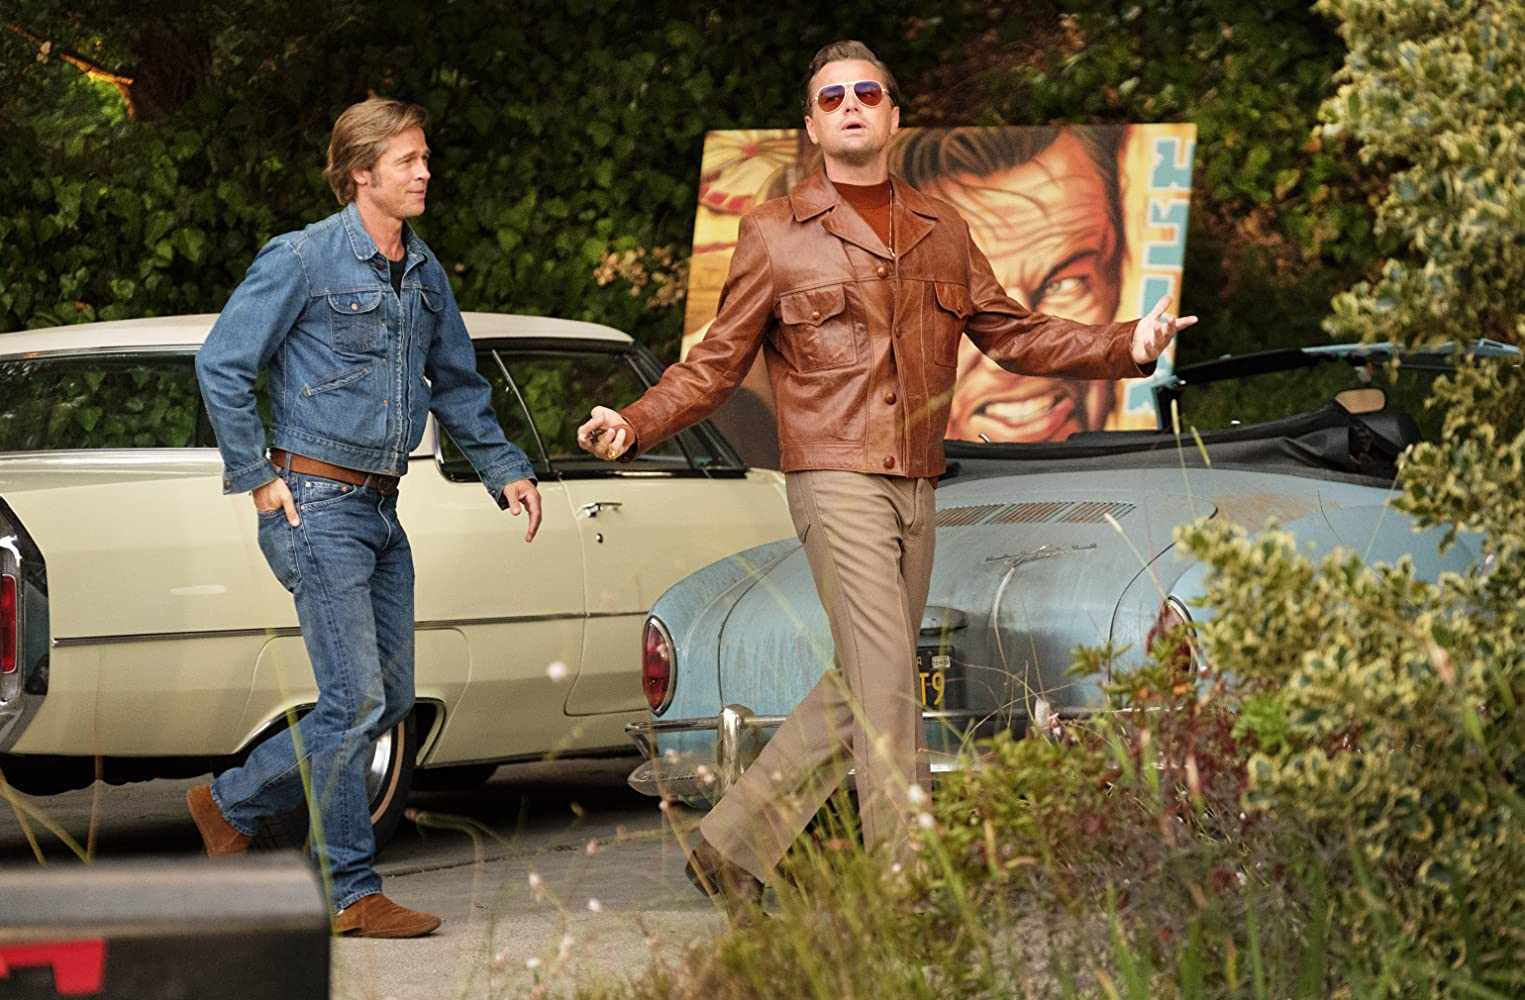 Brad Pitt and Leonardo DiCaprio in Once Upon a Time ...in Hollywood (2019)